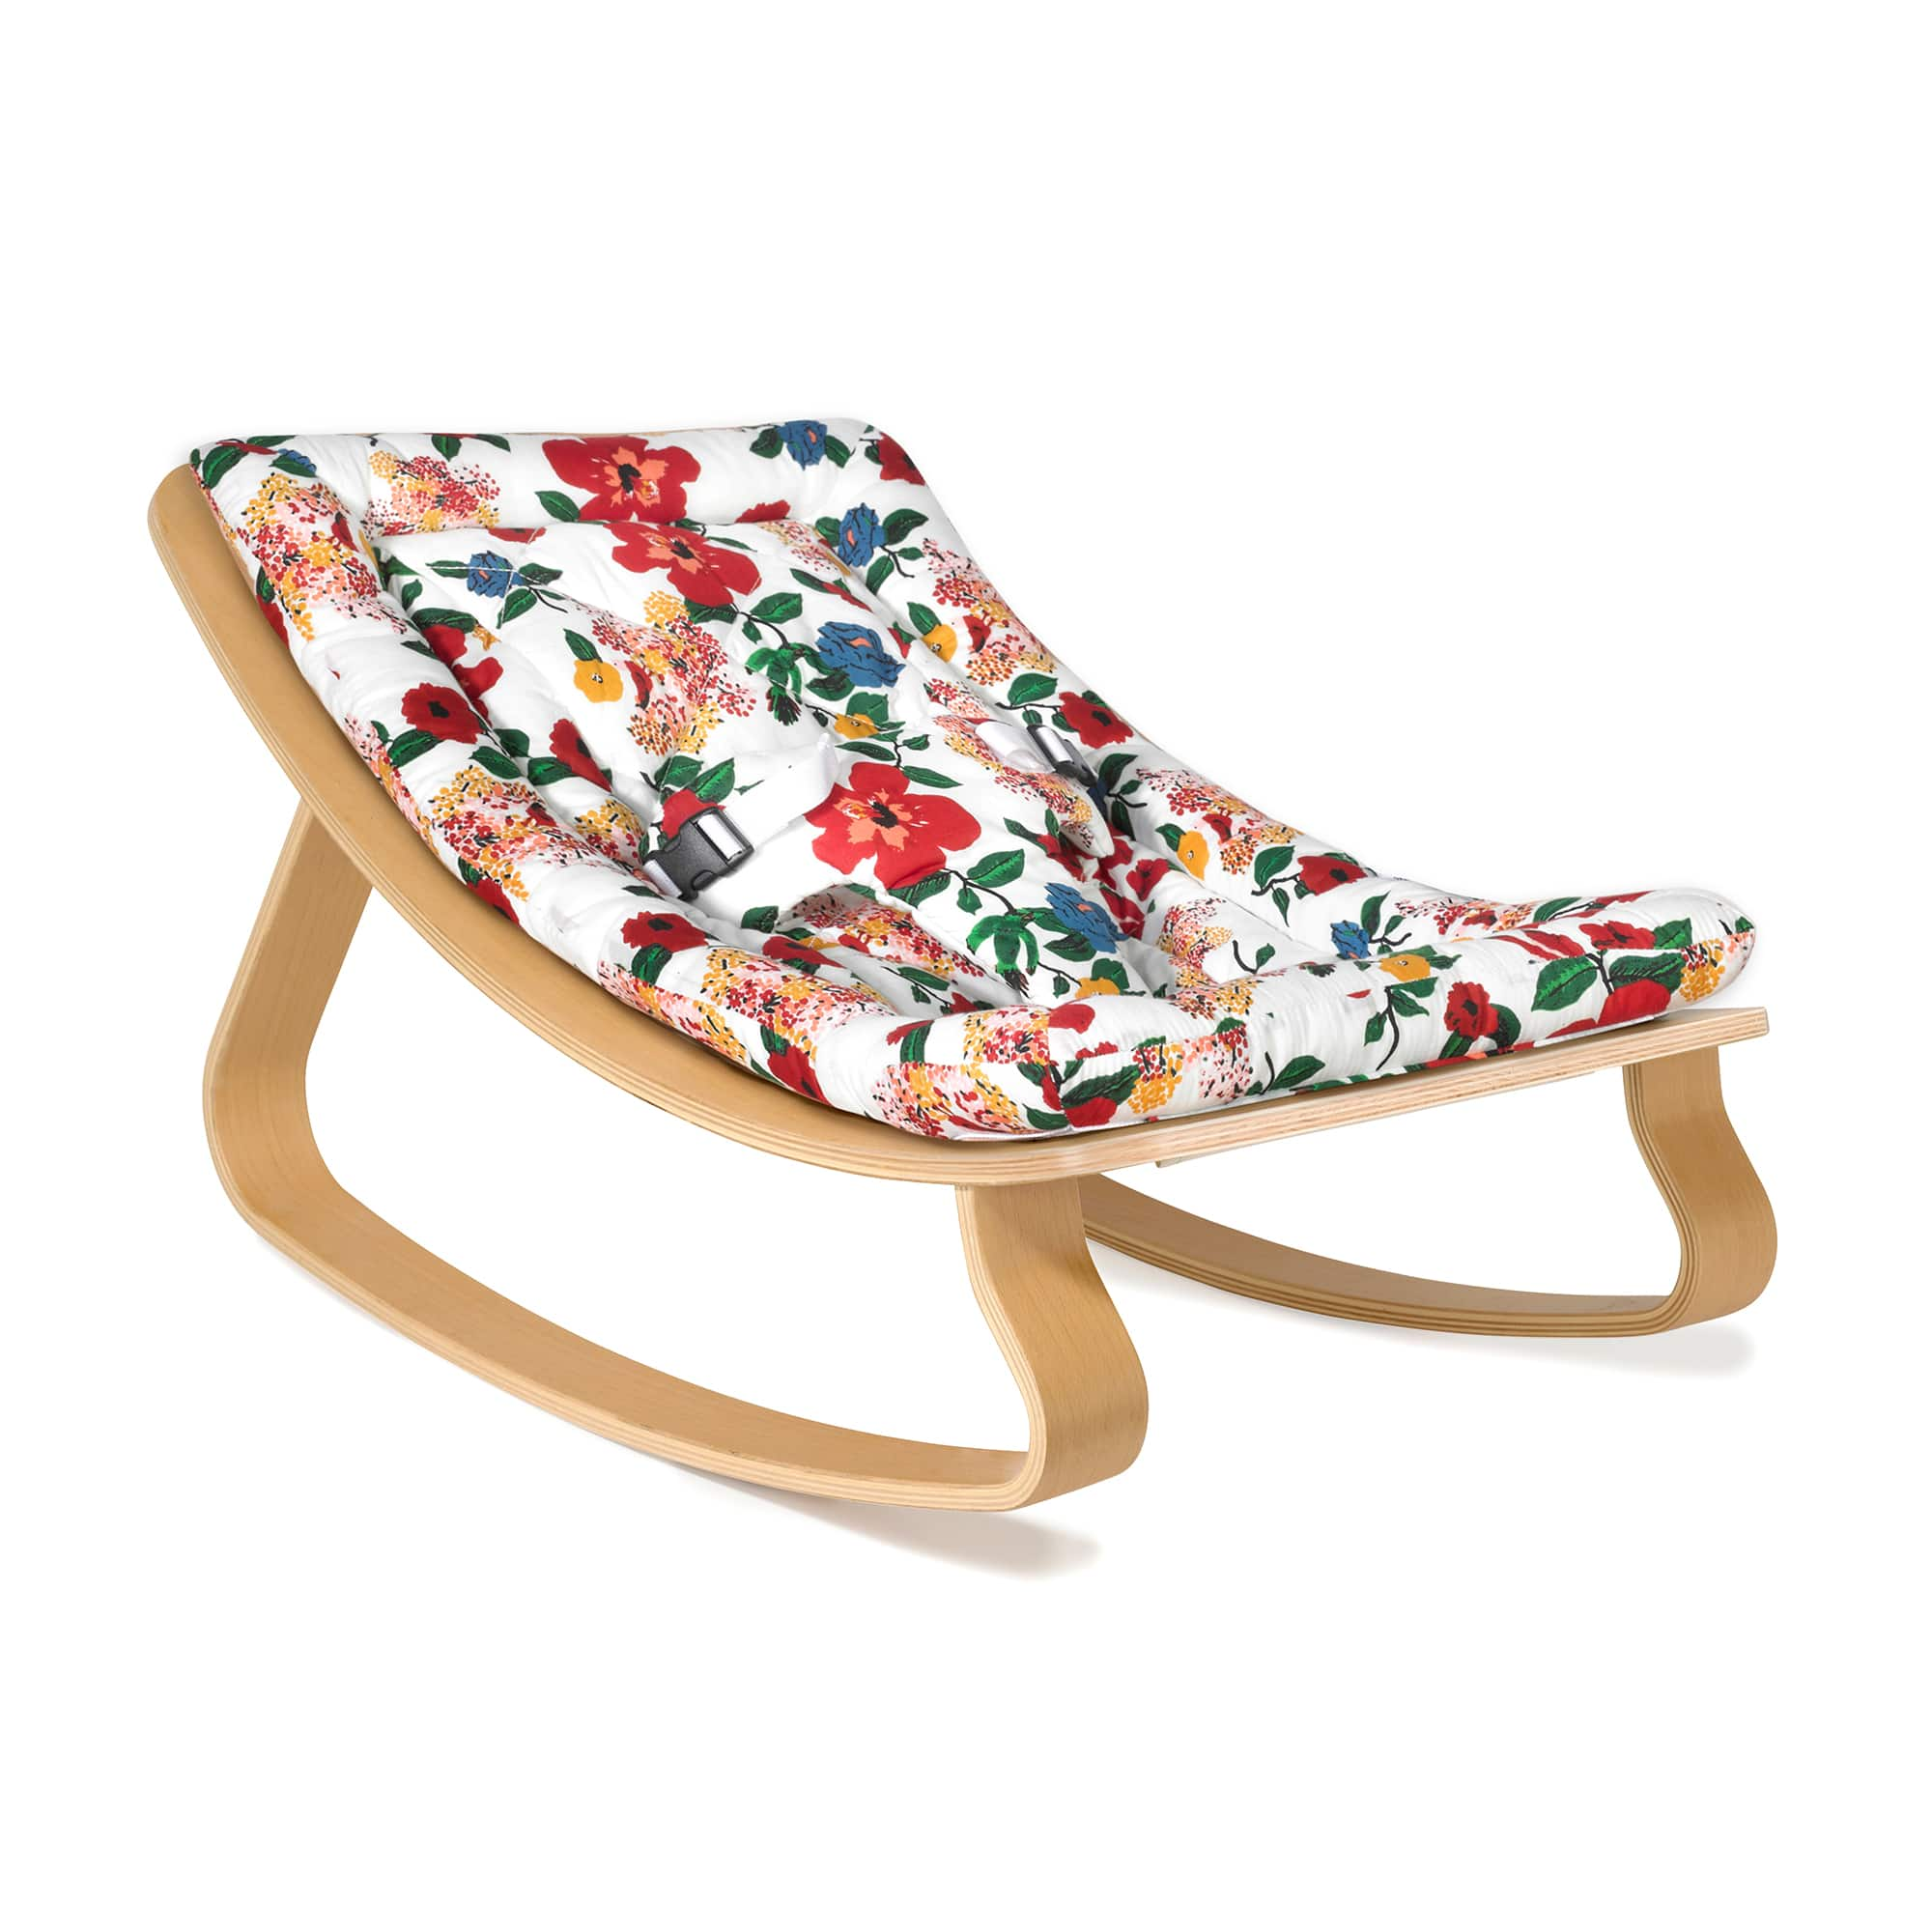 Levo Baby Rocker In Beech With Hibiscus Cushion